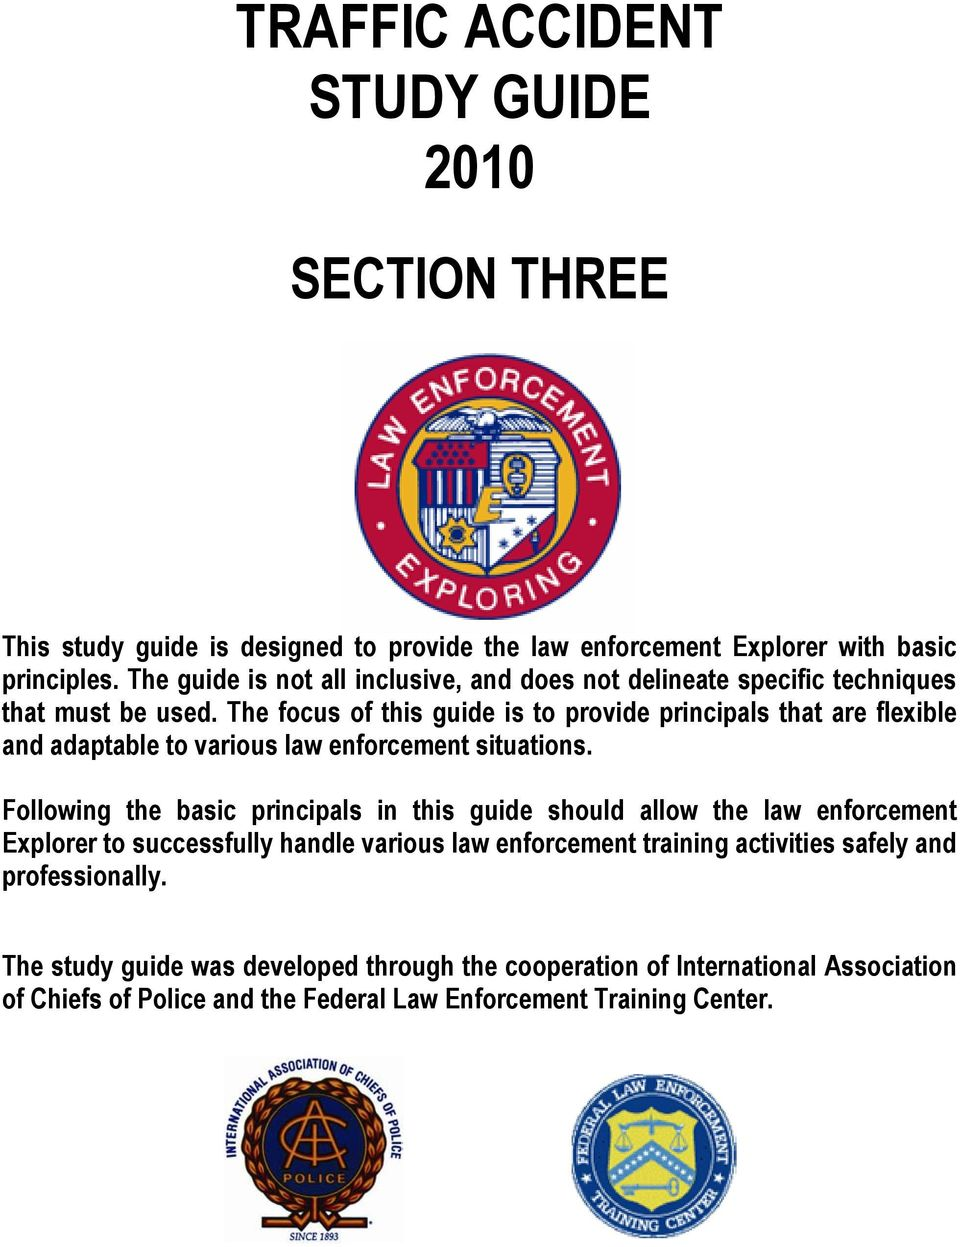 The focus of this guide is to provide principals that are flexible and adaptable to various law enforcement situations.